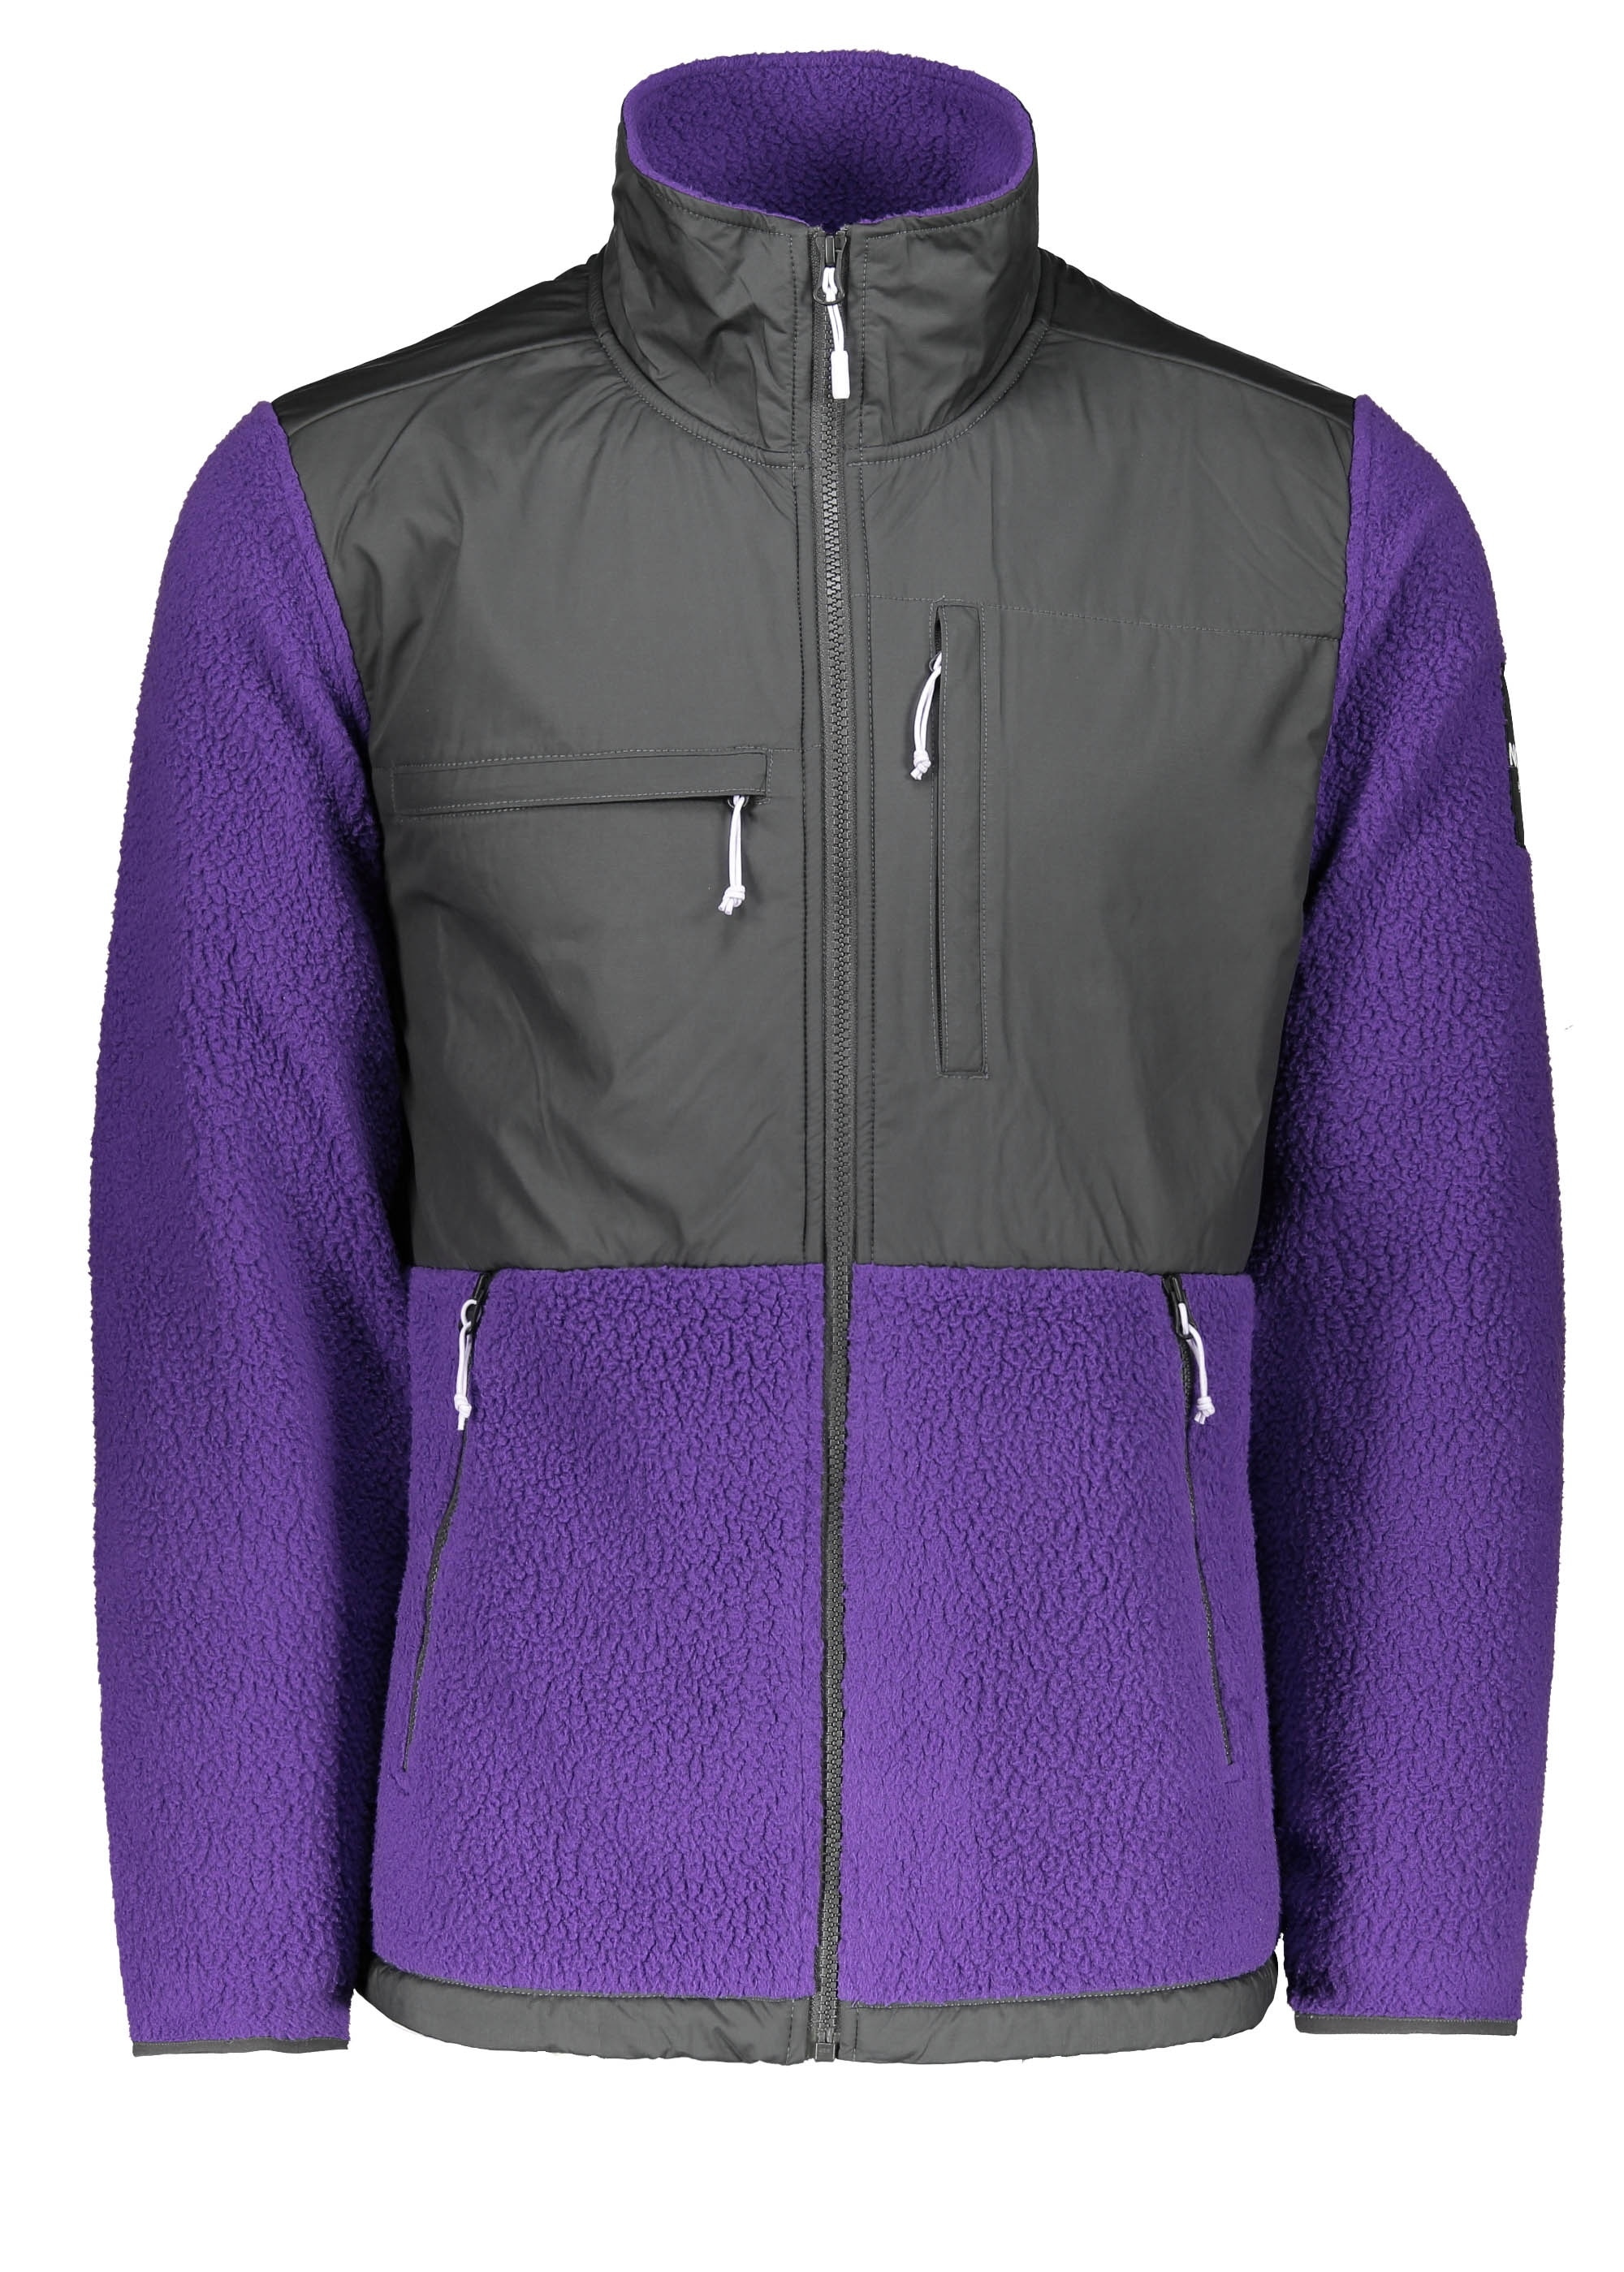 f8dd29fa931d The North Face Denali Fleece - Purple   Grey - Triads Mens from ...